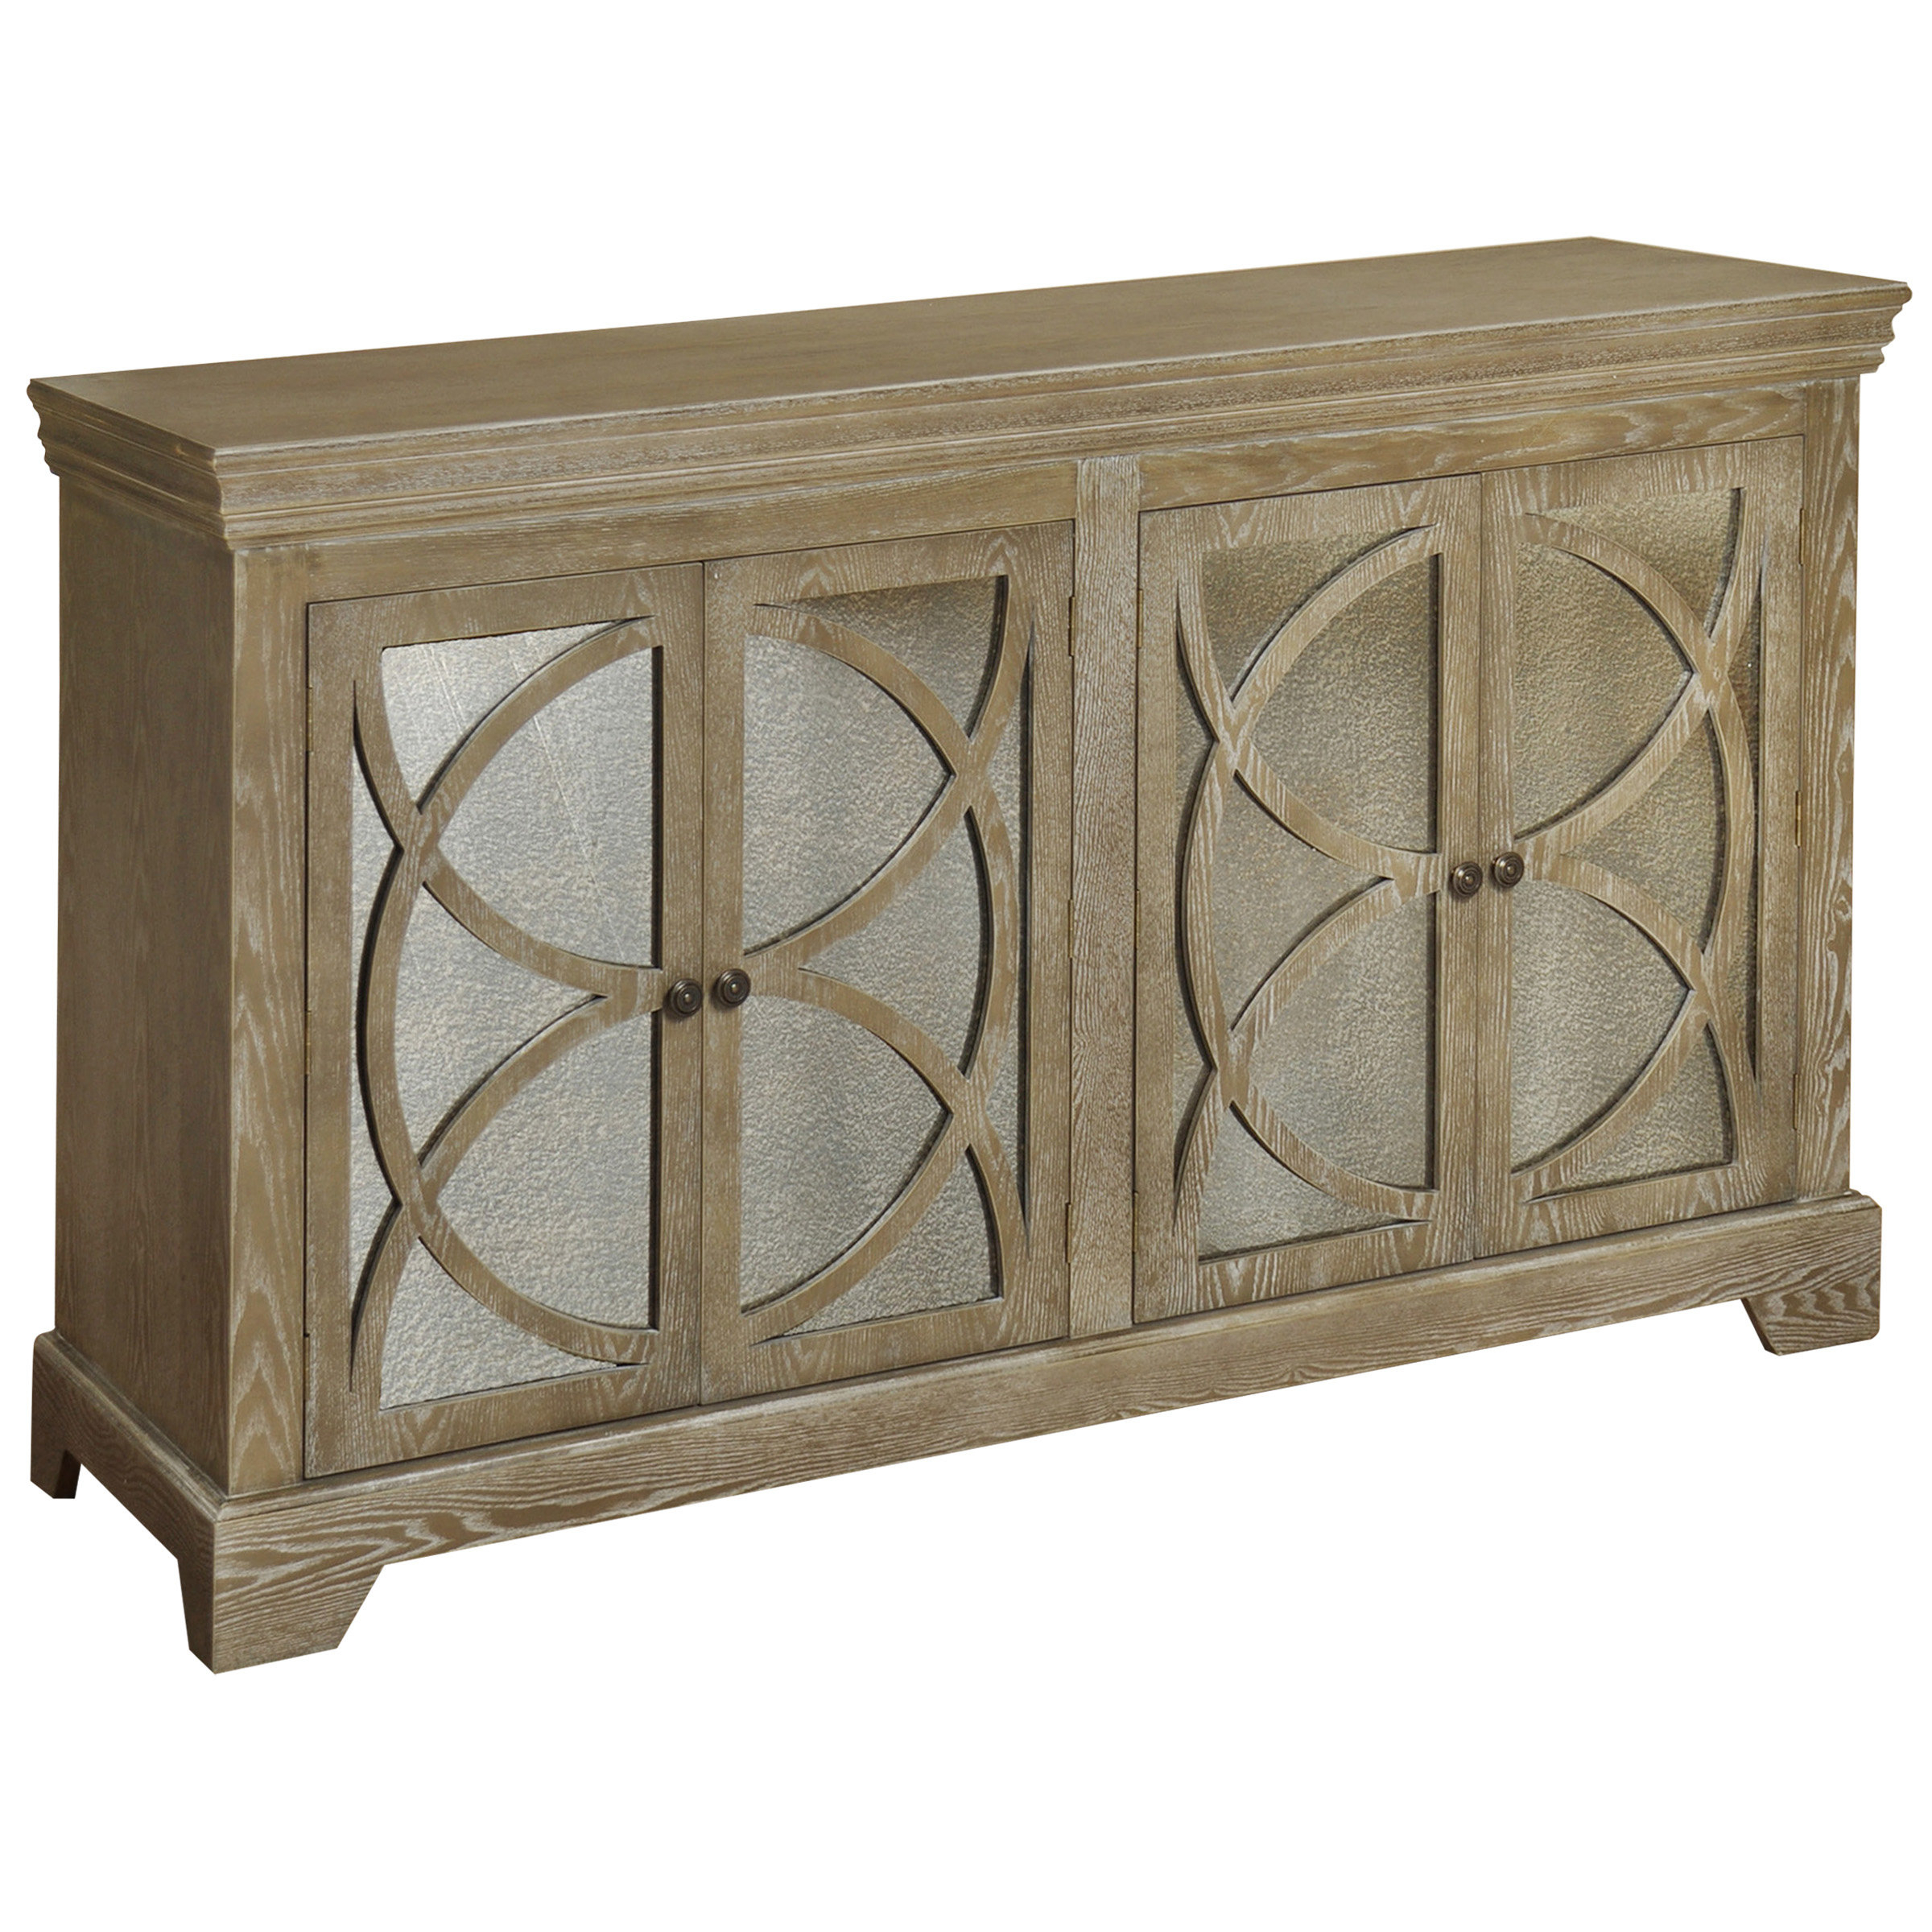 60 Inch Credenza | Wayfair Throughout Lainey Credenzas (View 1 of 20)